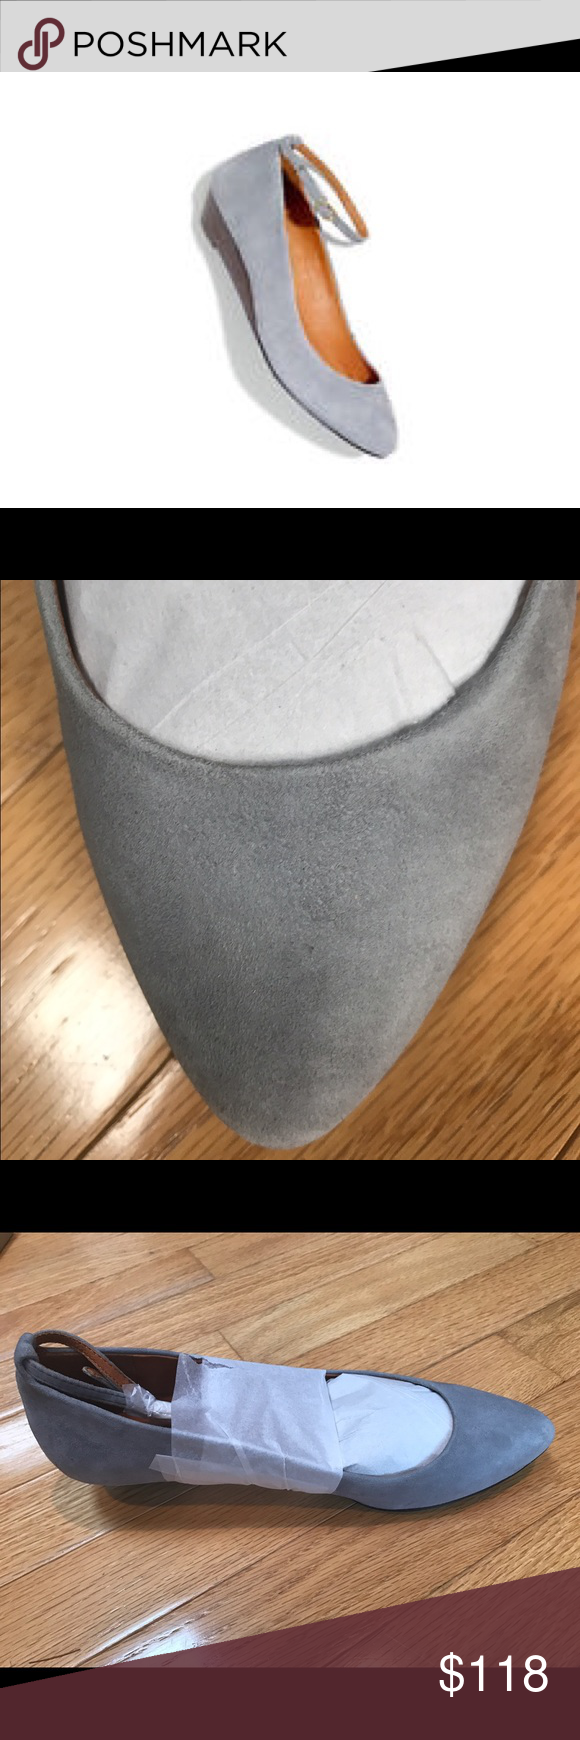 NIB Madewell 7 Ankle Strap Wedge Grey Gray Suede NIB Size 7 The Ankle Strap suede Mini Wedge Grey gray stonewall  Color: stonewall   Heels - approximately 1 inch. Madewell Shoes Wedges